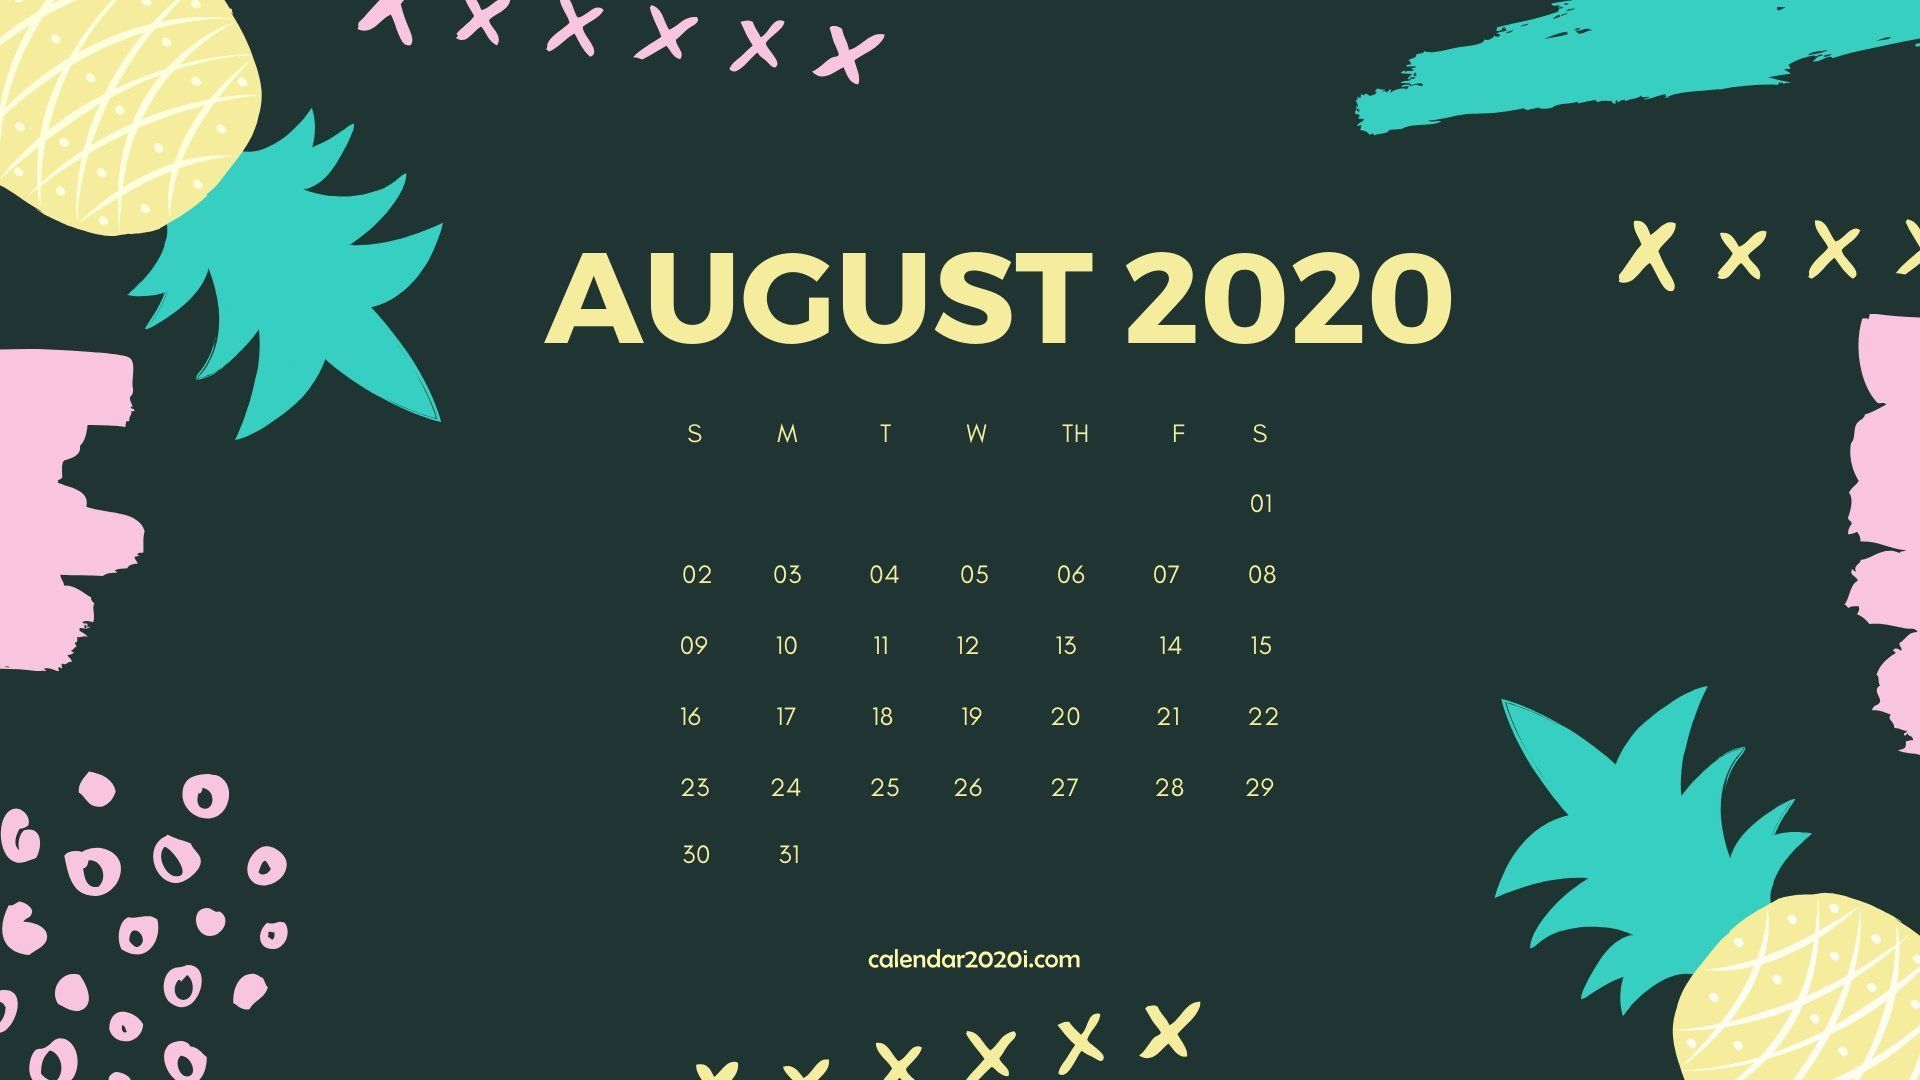 August 2020 Calendar Wallpapers   Top August 2020 Calendar 1920x1080